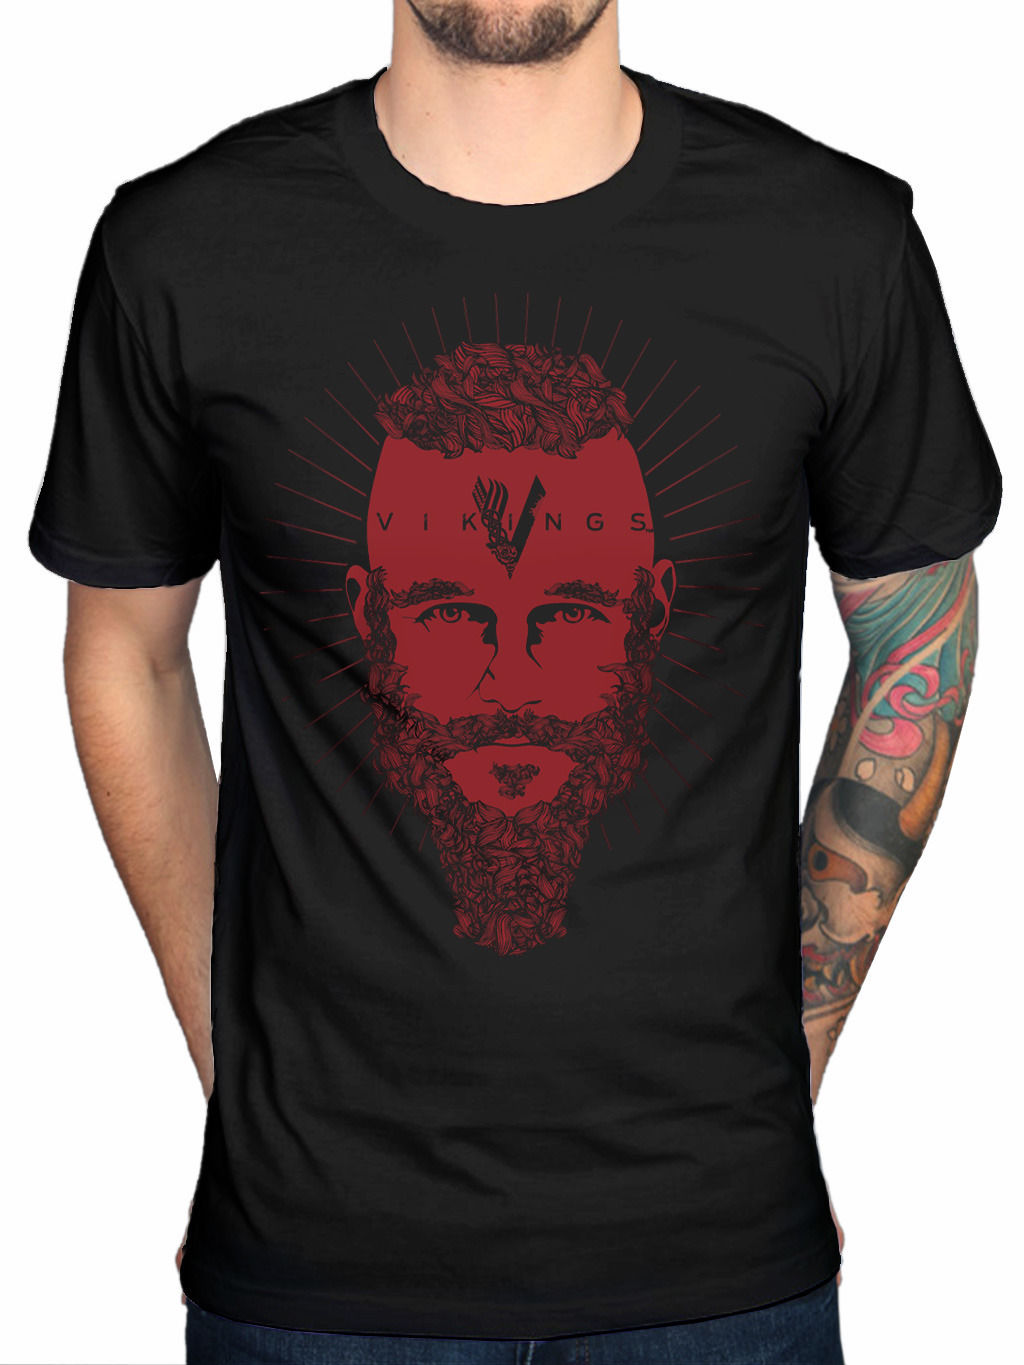 Official Vikings Ragnar Face T Shirt Tv Series History Channel Fan Merchandise